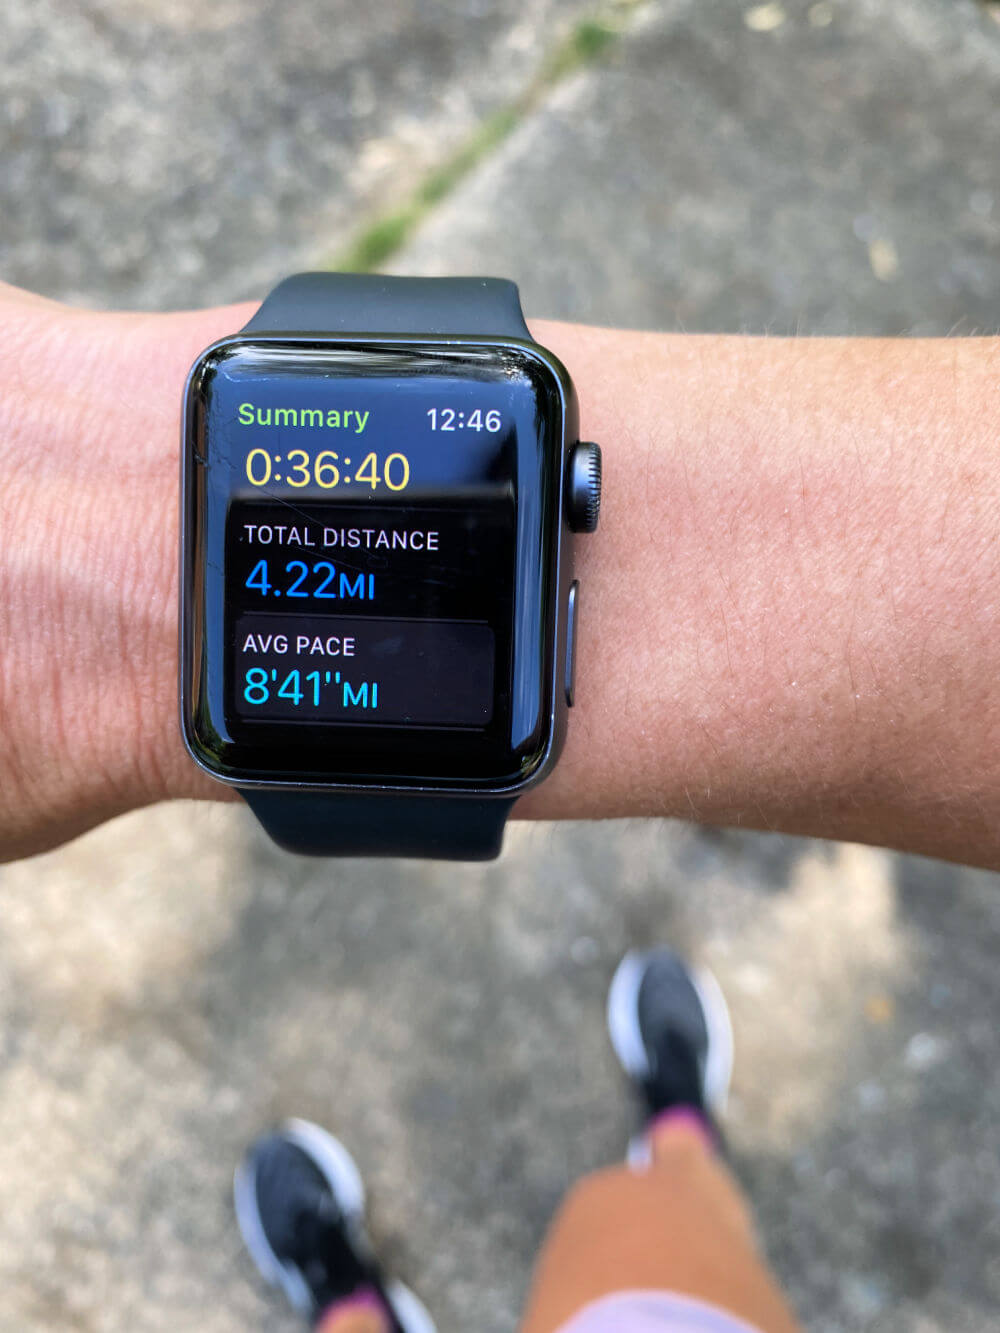 Apple Watch running